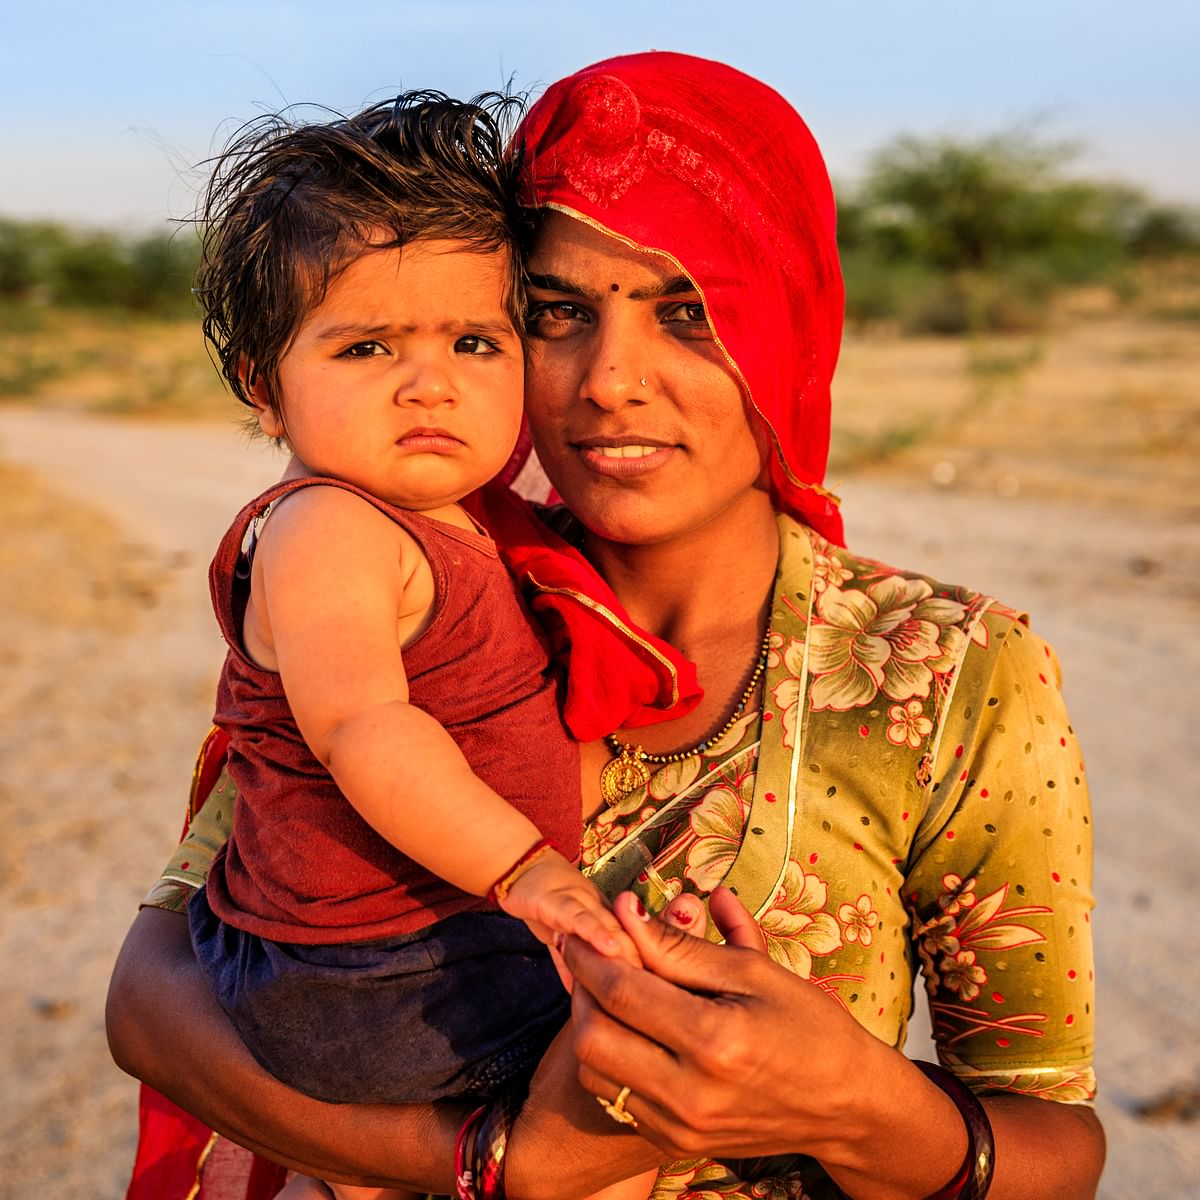 Single women in villages bear the brunt of entrenched customs and superstitions. (Photo: iStockphoto)